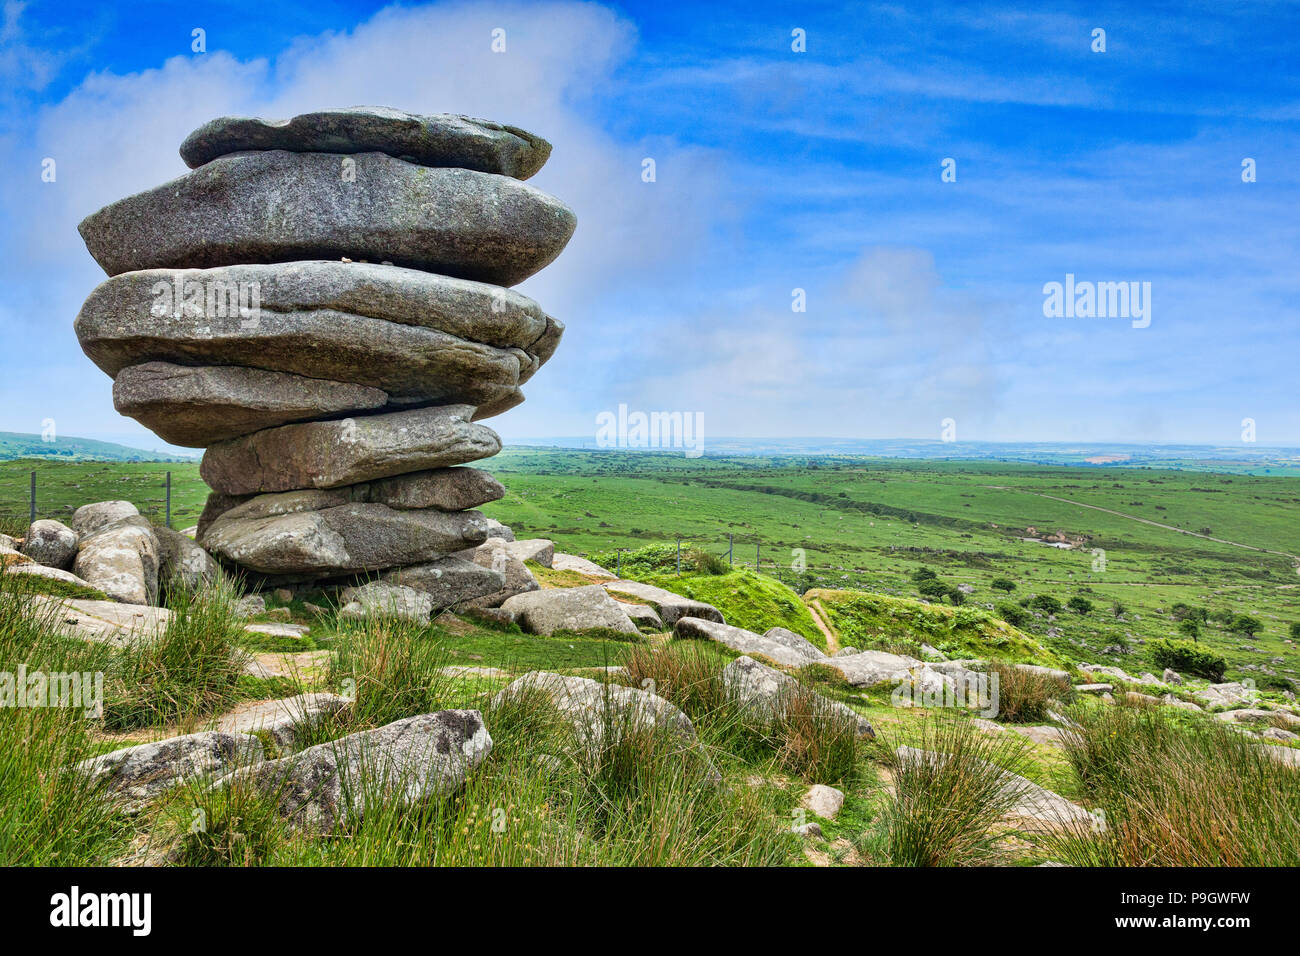 The Cheesewring, a granite tor on Bodmin Moor, near the village of Minions, Cornwall, UK - Stock Image